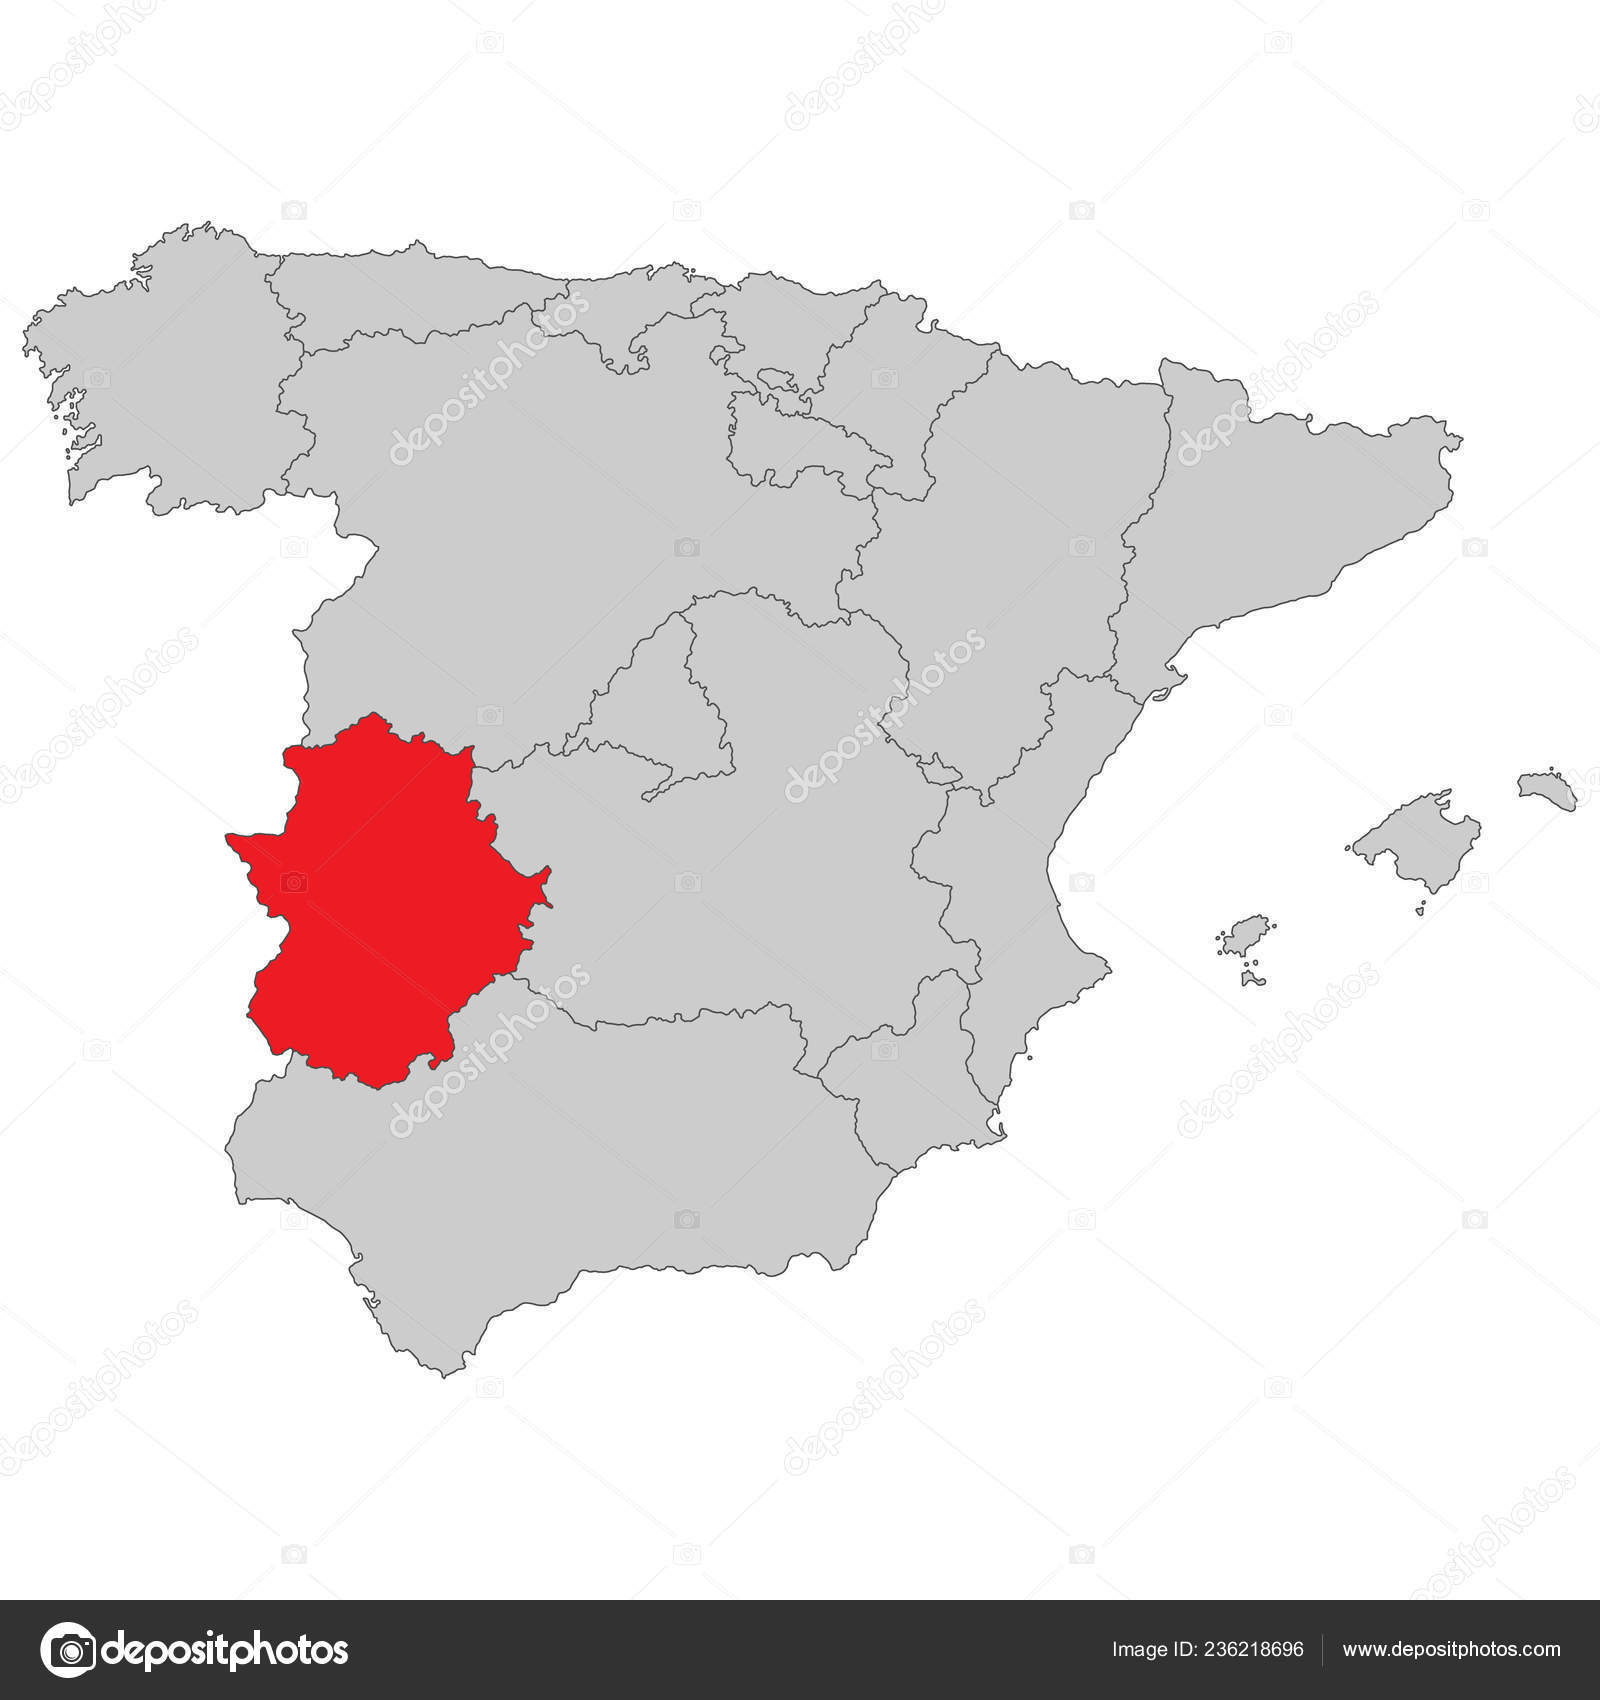 Map Of Spain Extremadura.Spain Map Spain Extremadura High Detailed Stock Vector C Ii